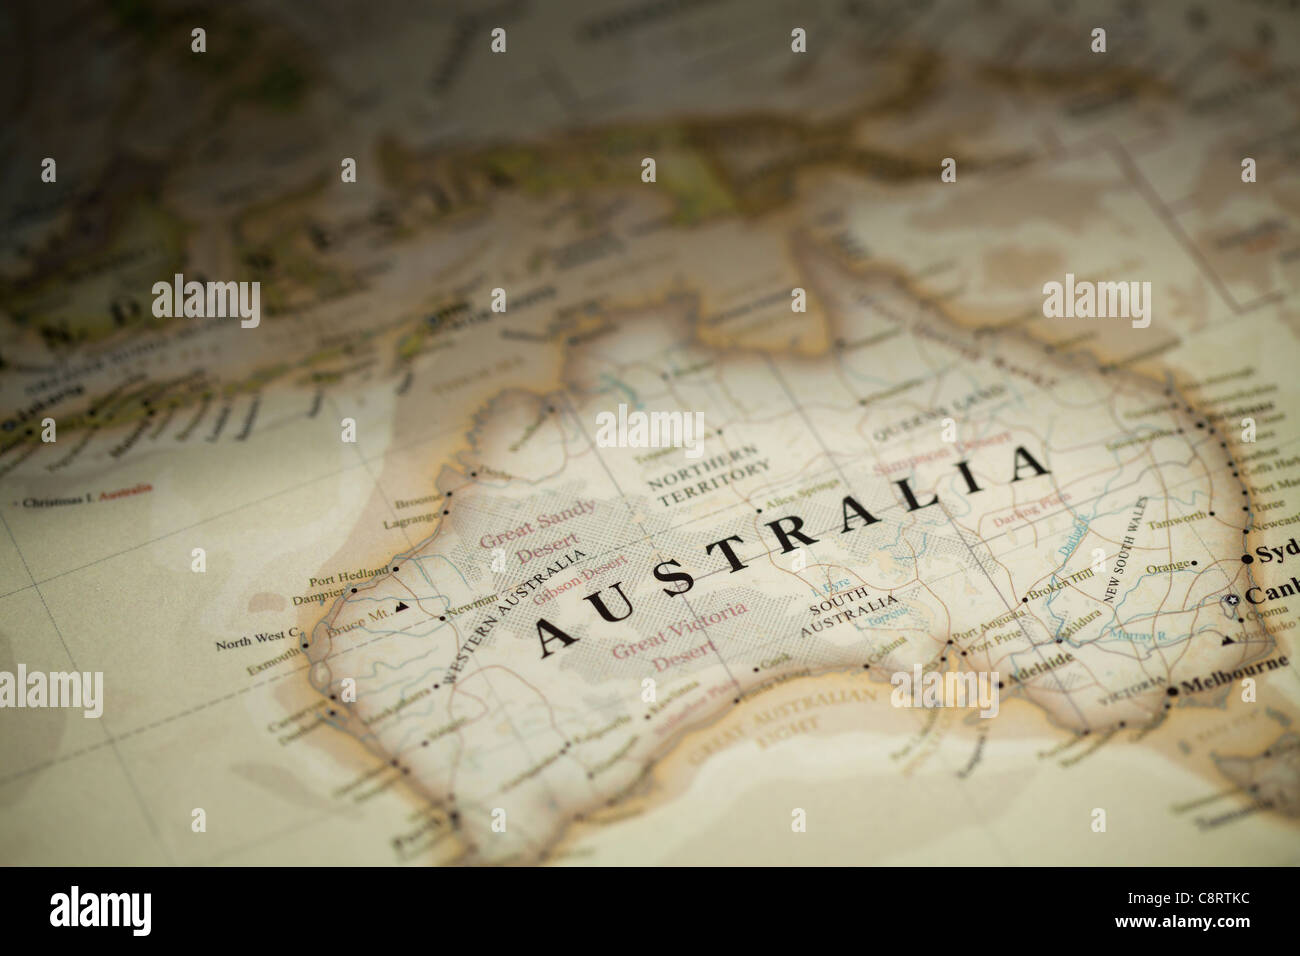 Close-up of Australian continent world map - Stock Image